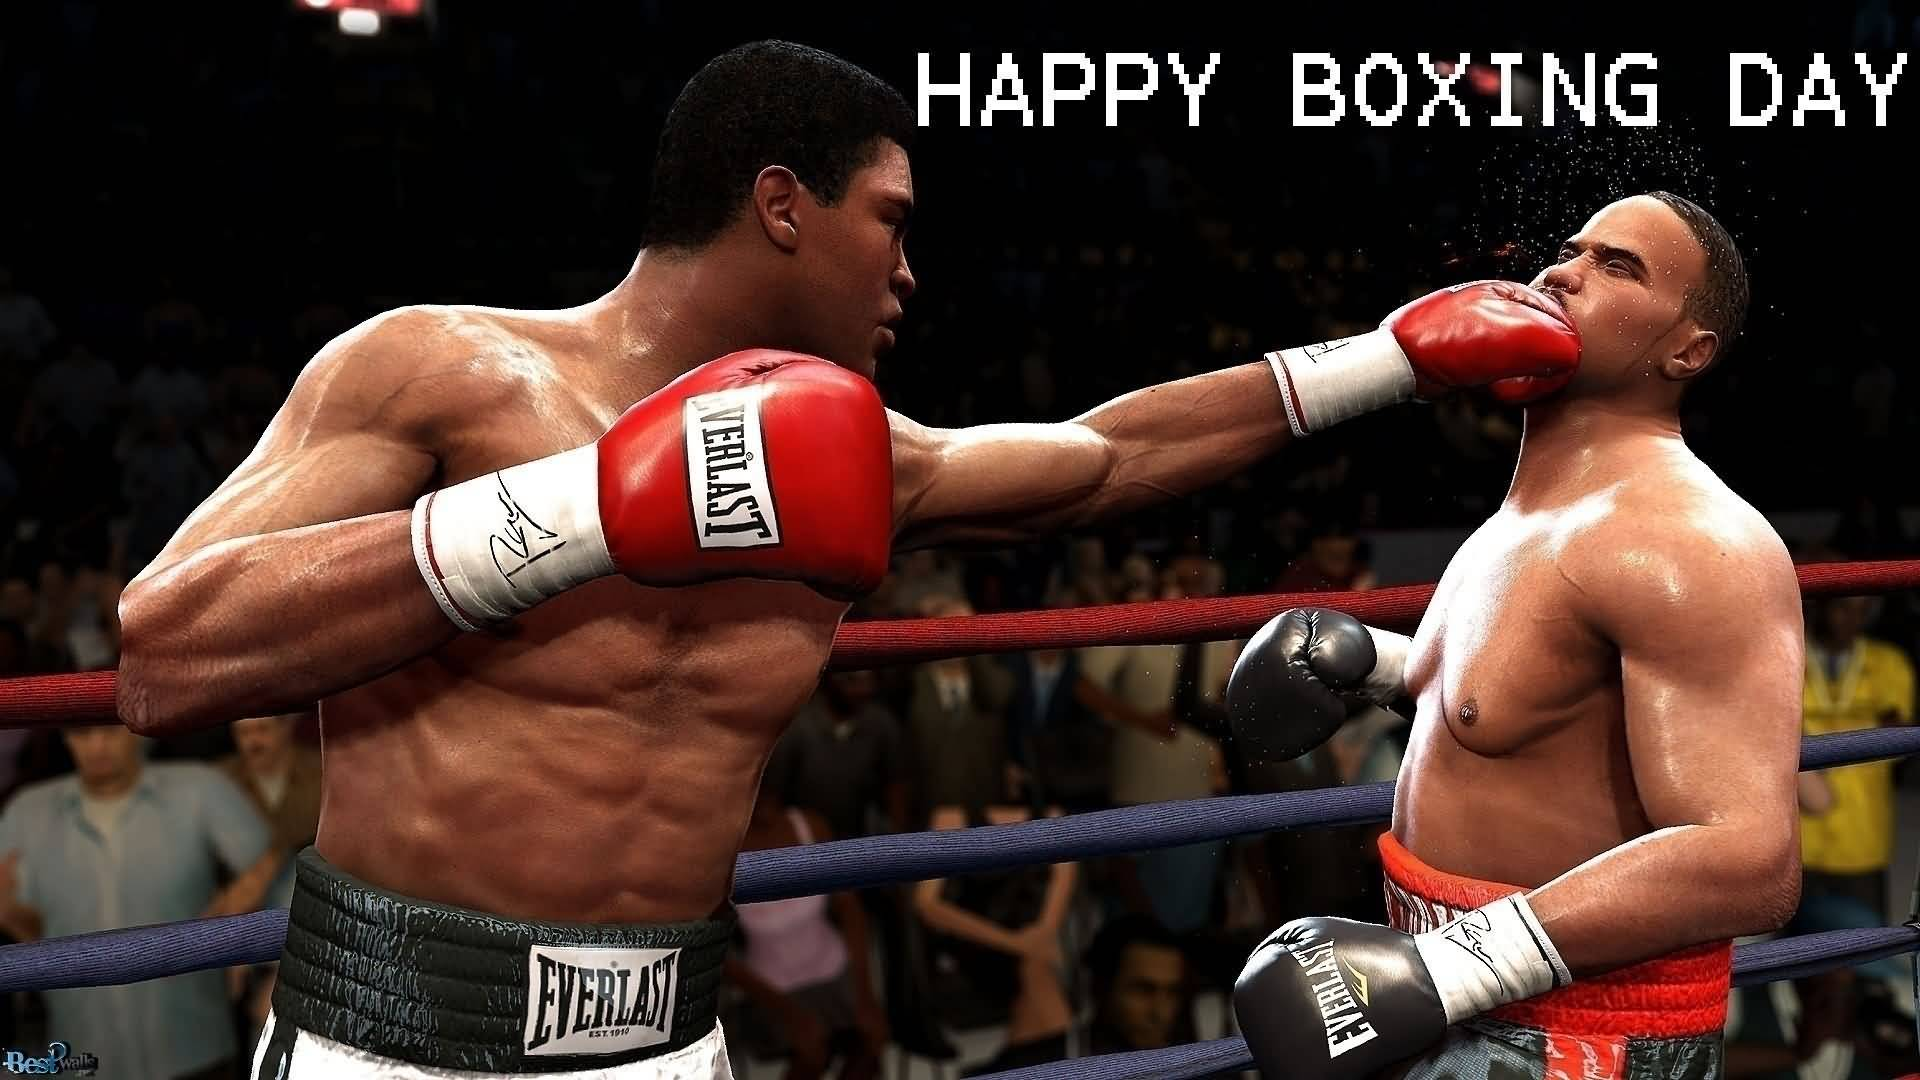 Boxing Day Wishes 50